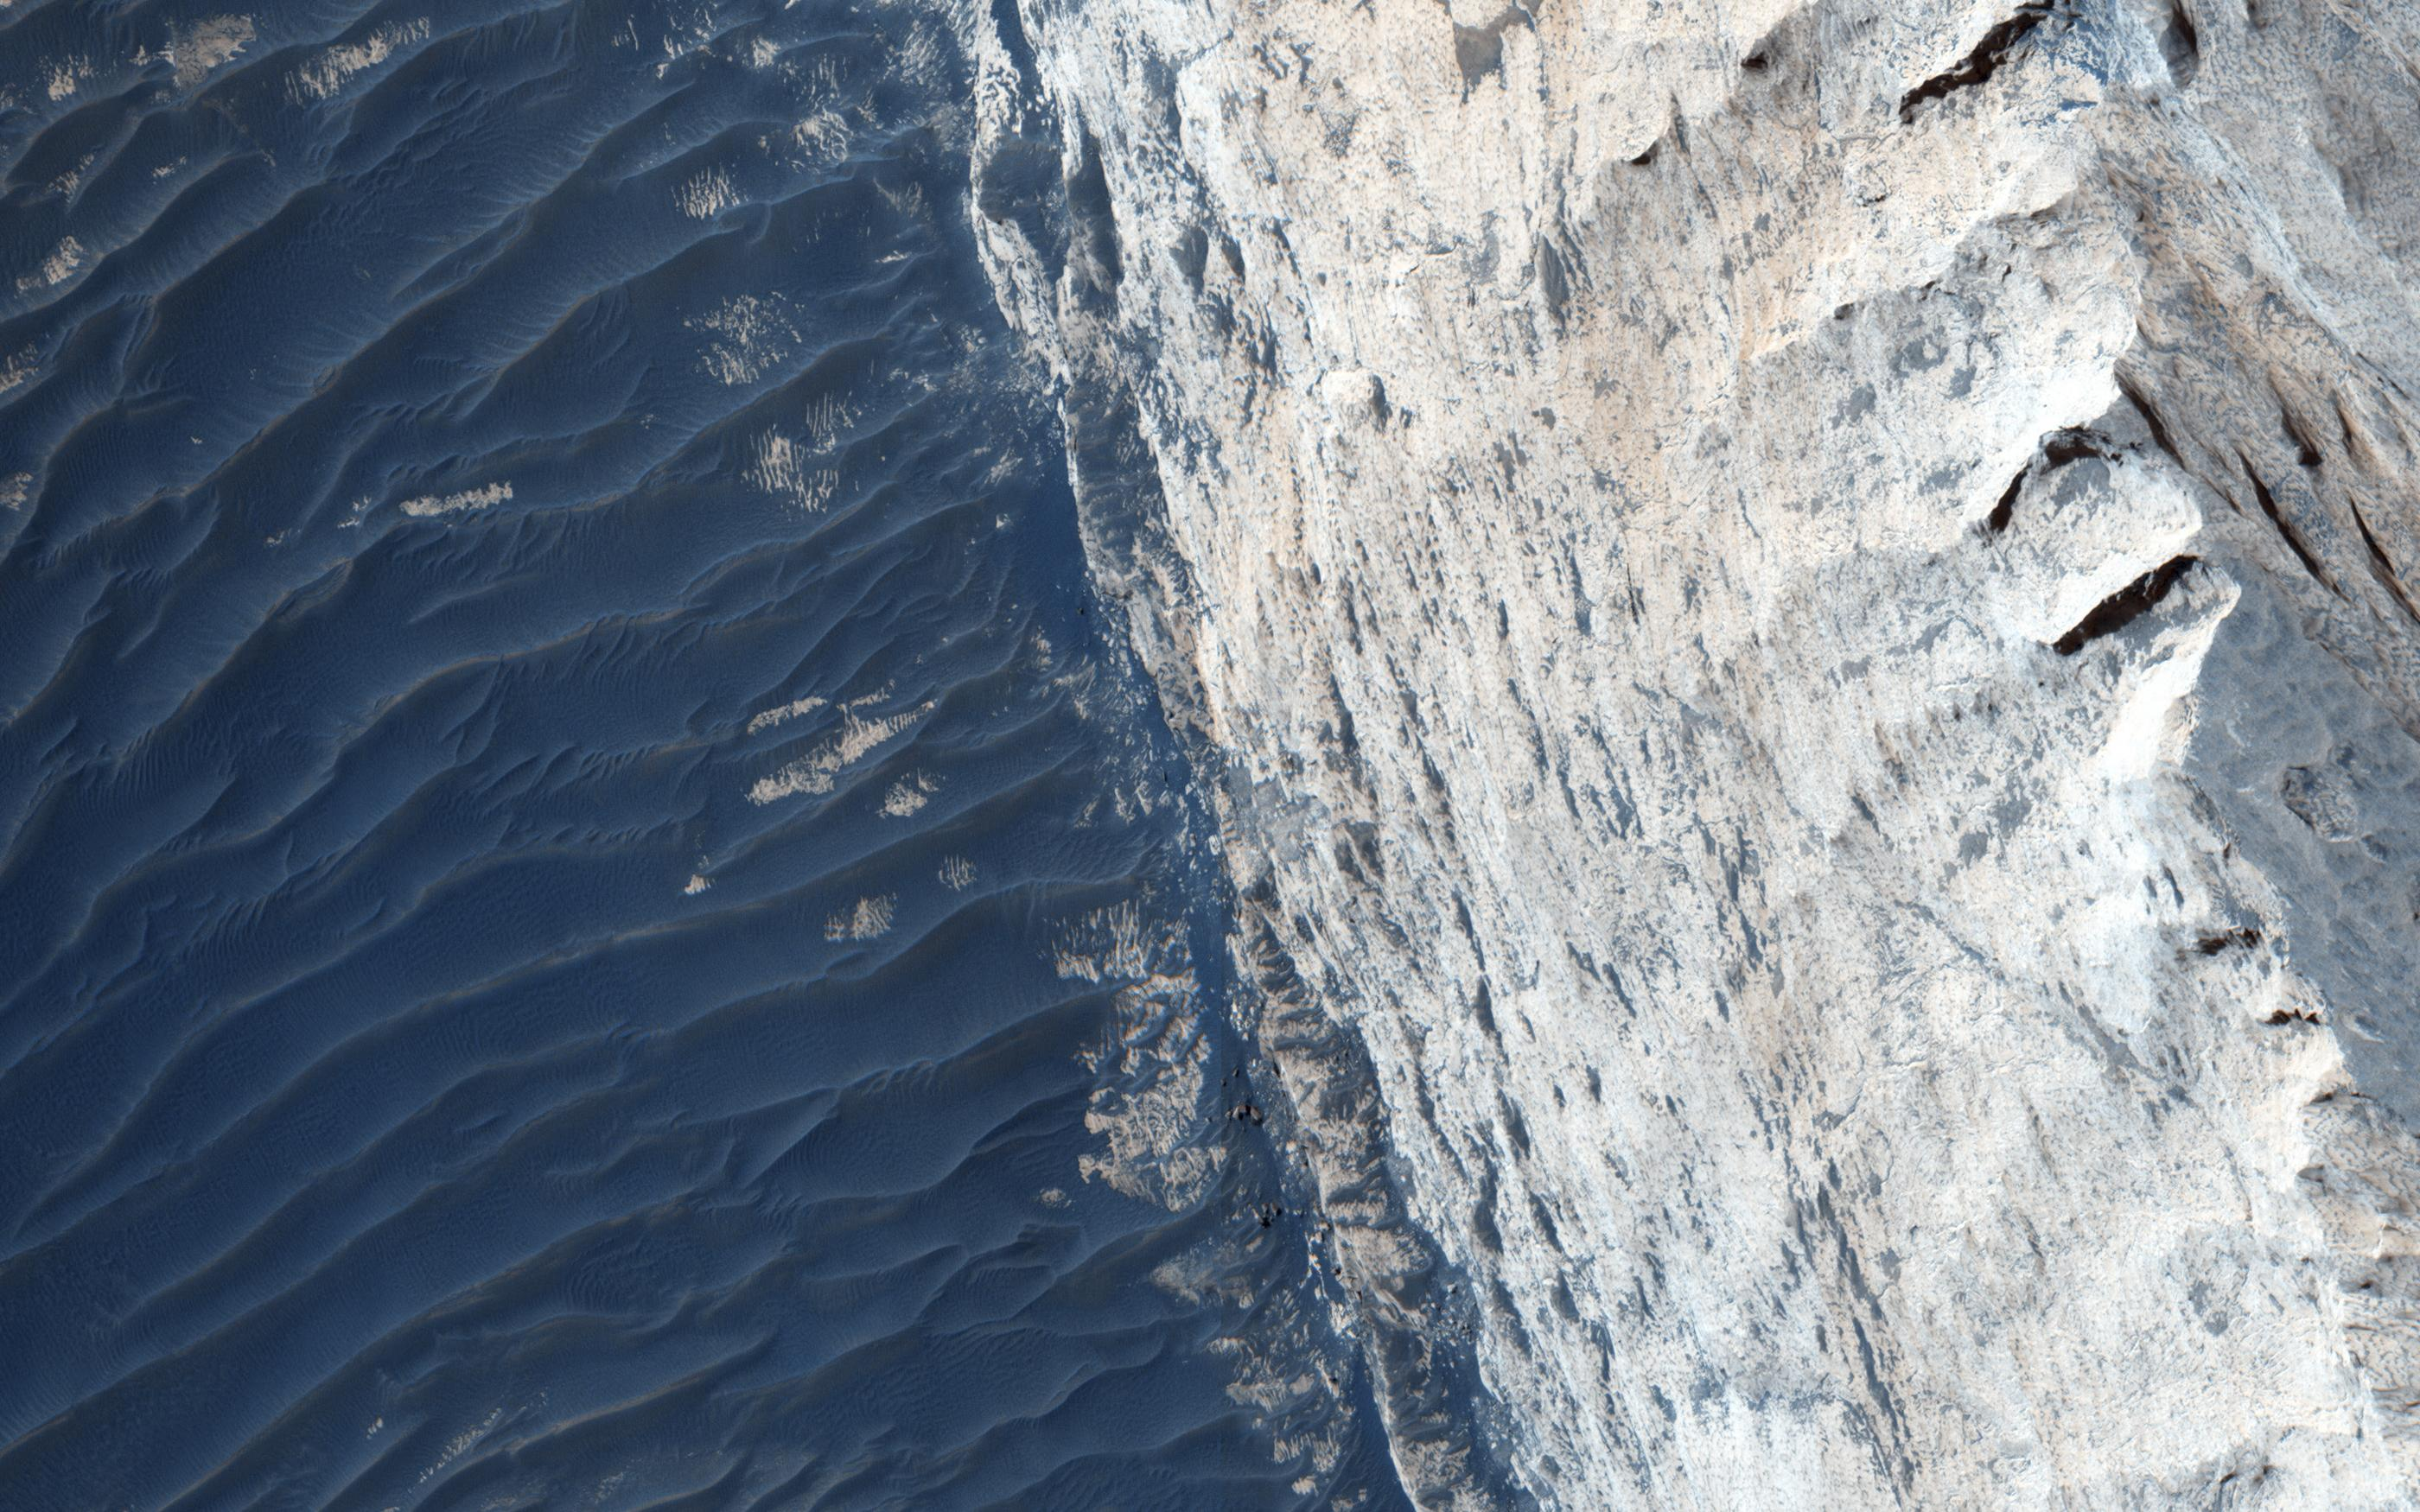 A view of Ophir Chasma on the northern portion of the vast Mars canyon system, Vallles Marineris, taken by NASA's Mars Reconnaissance Orbiter.   NASA/JPL/University of Arizona